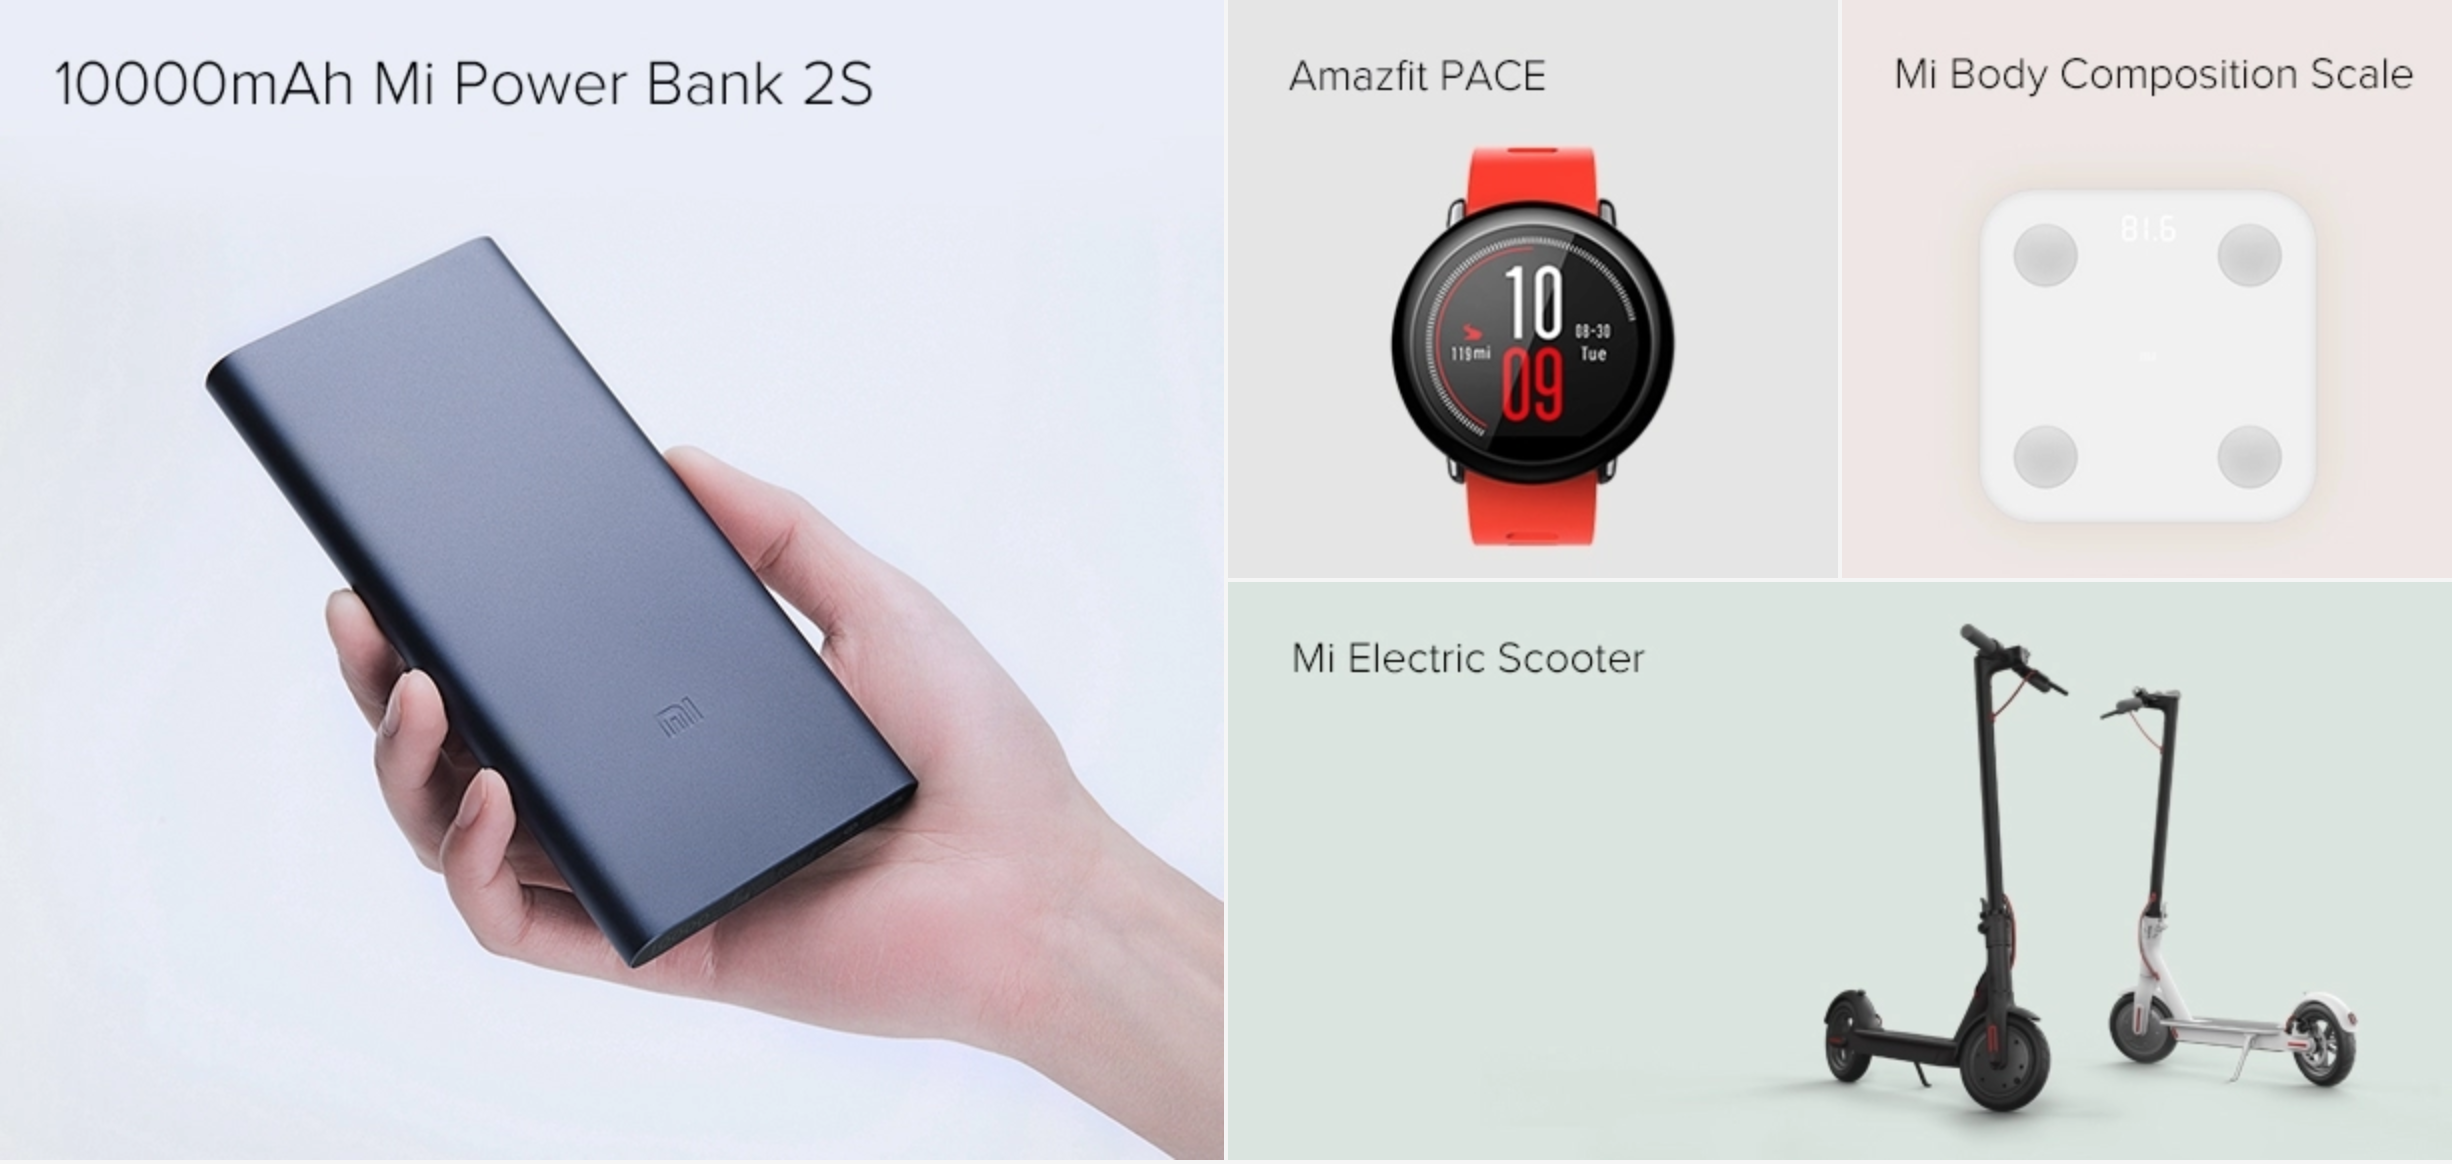 Xiaomi's products, rising in global popularity